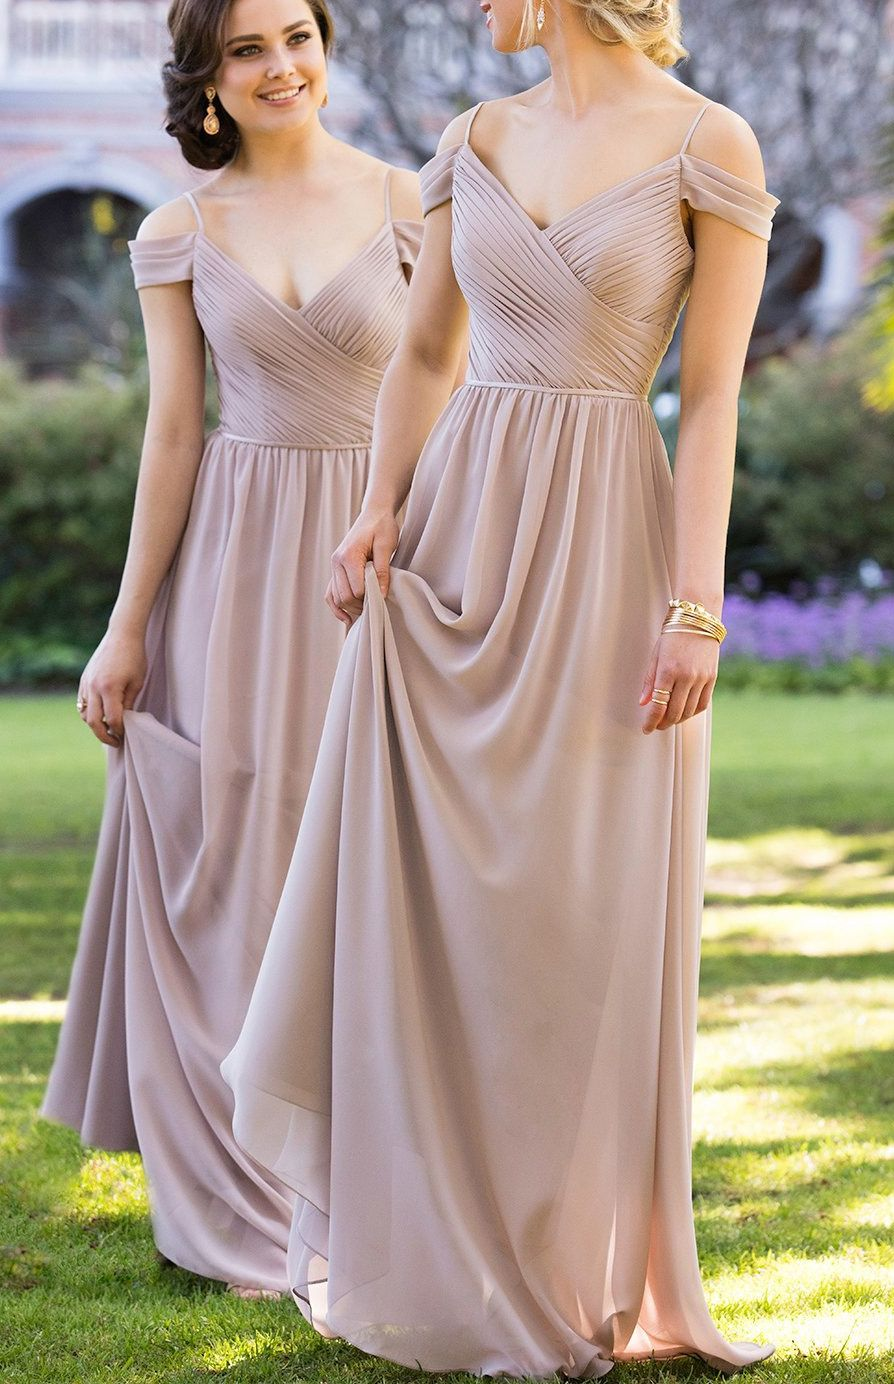 Sleeveless bridesmaid dresses grey sleeveless bridesmaid dresses